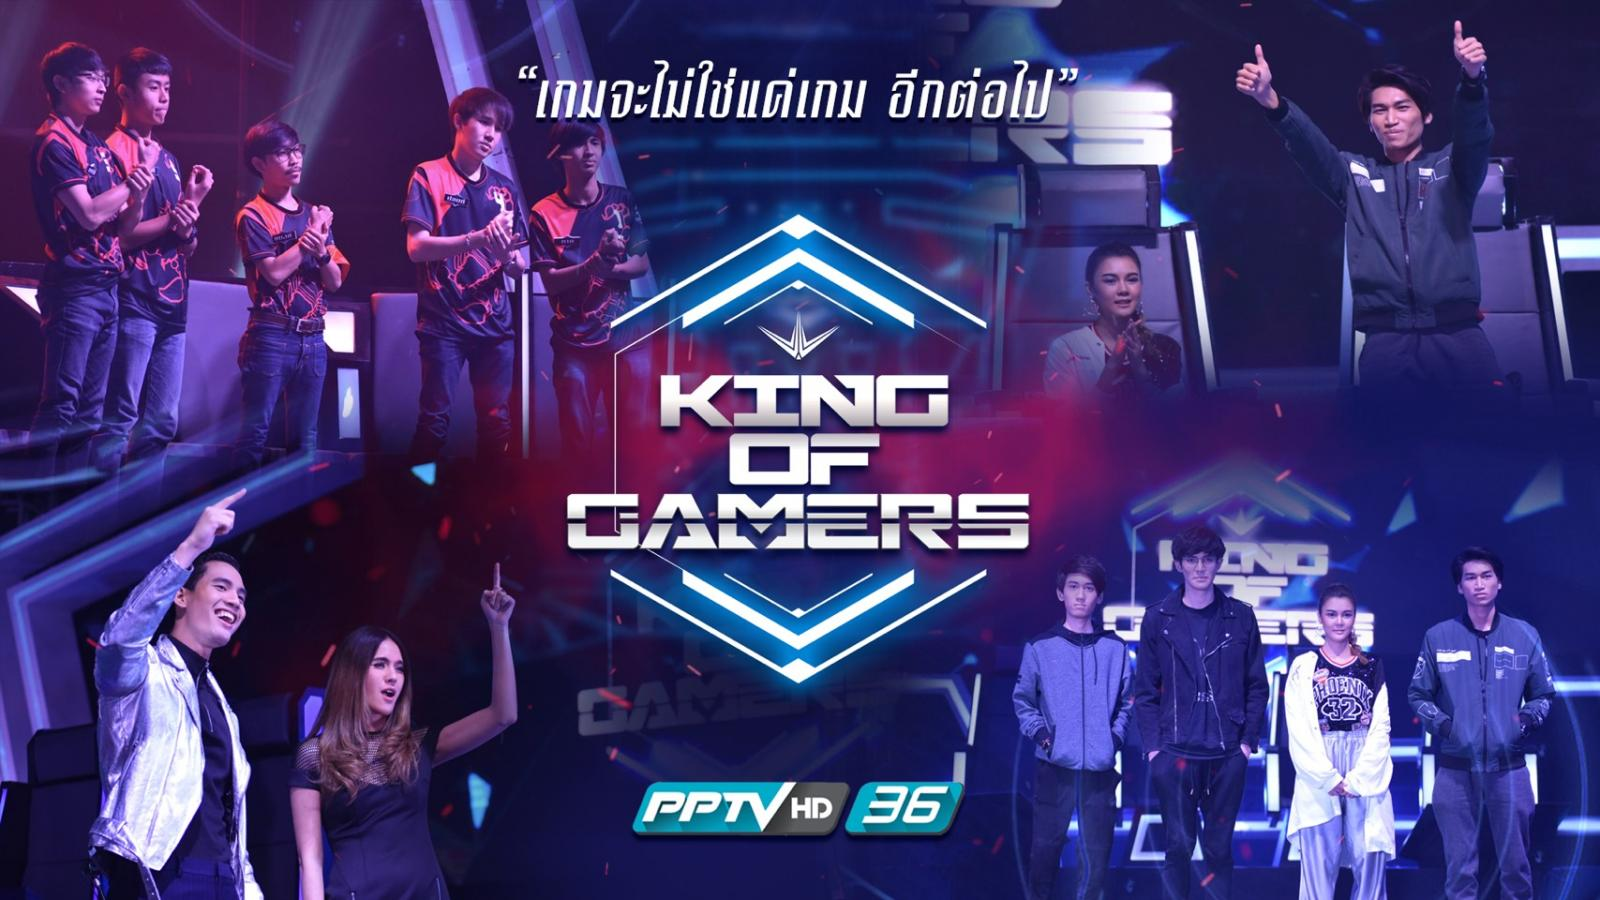 King of Gamers EP.3